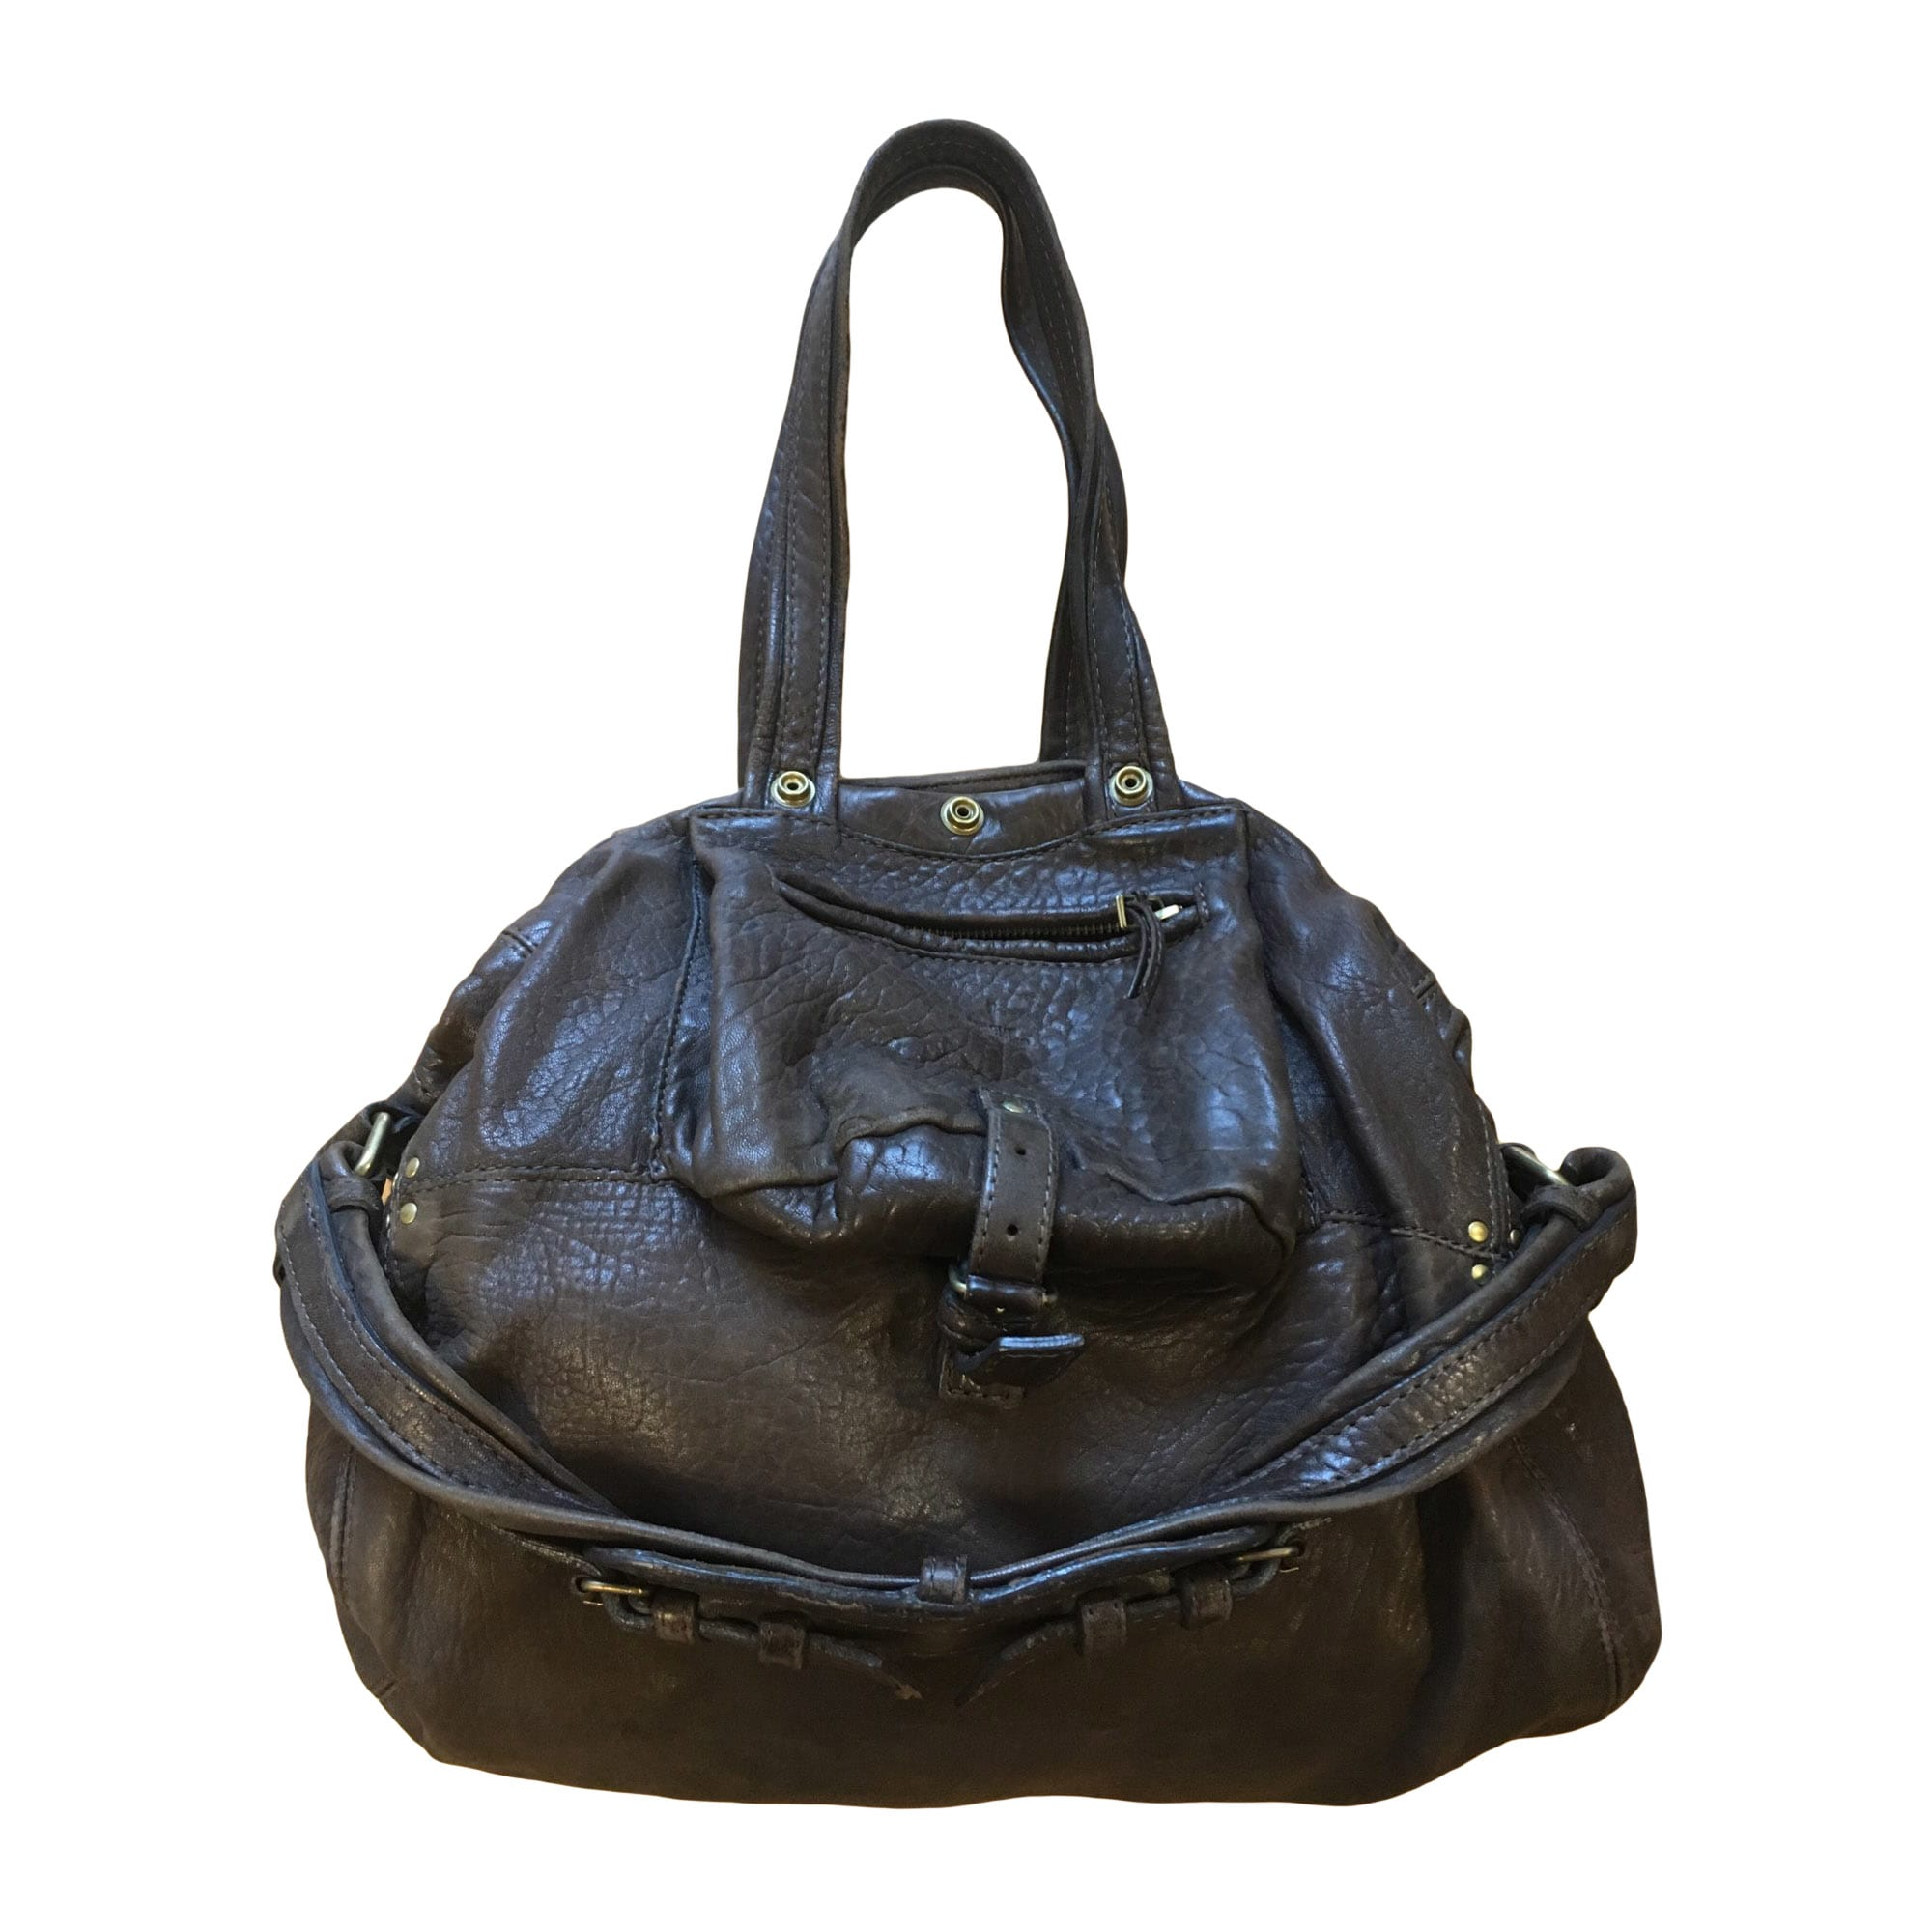 Leather Handbag JEROME DREYFUSS Brown